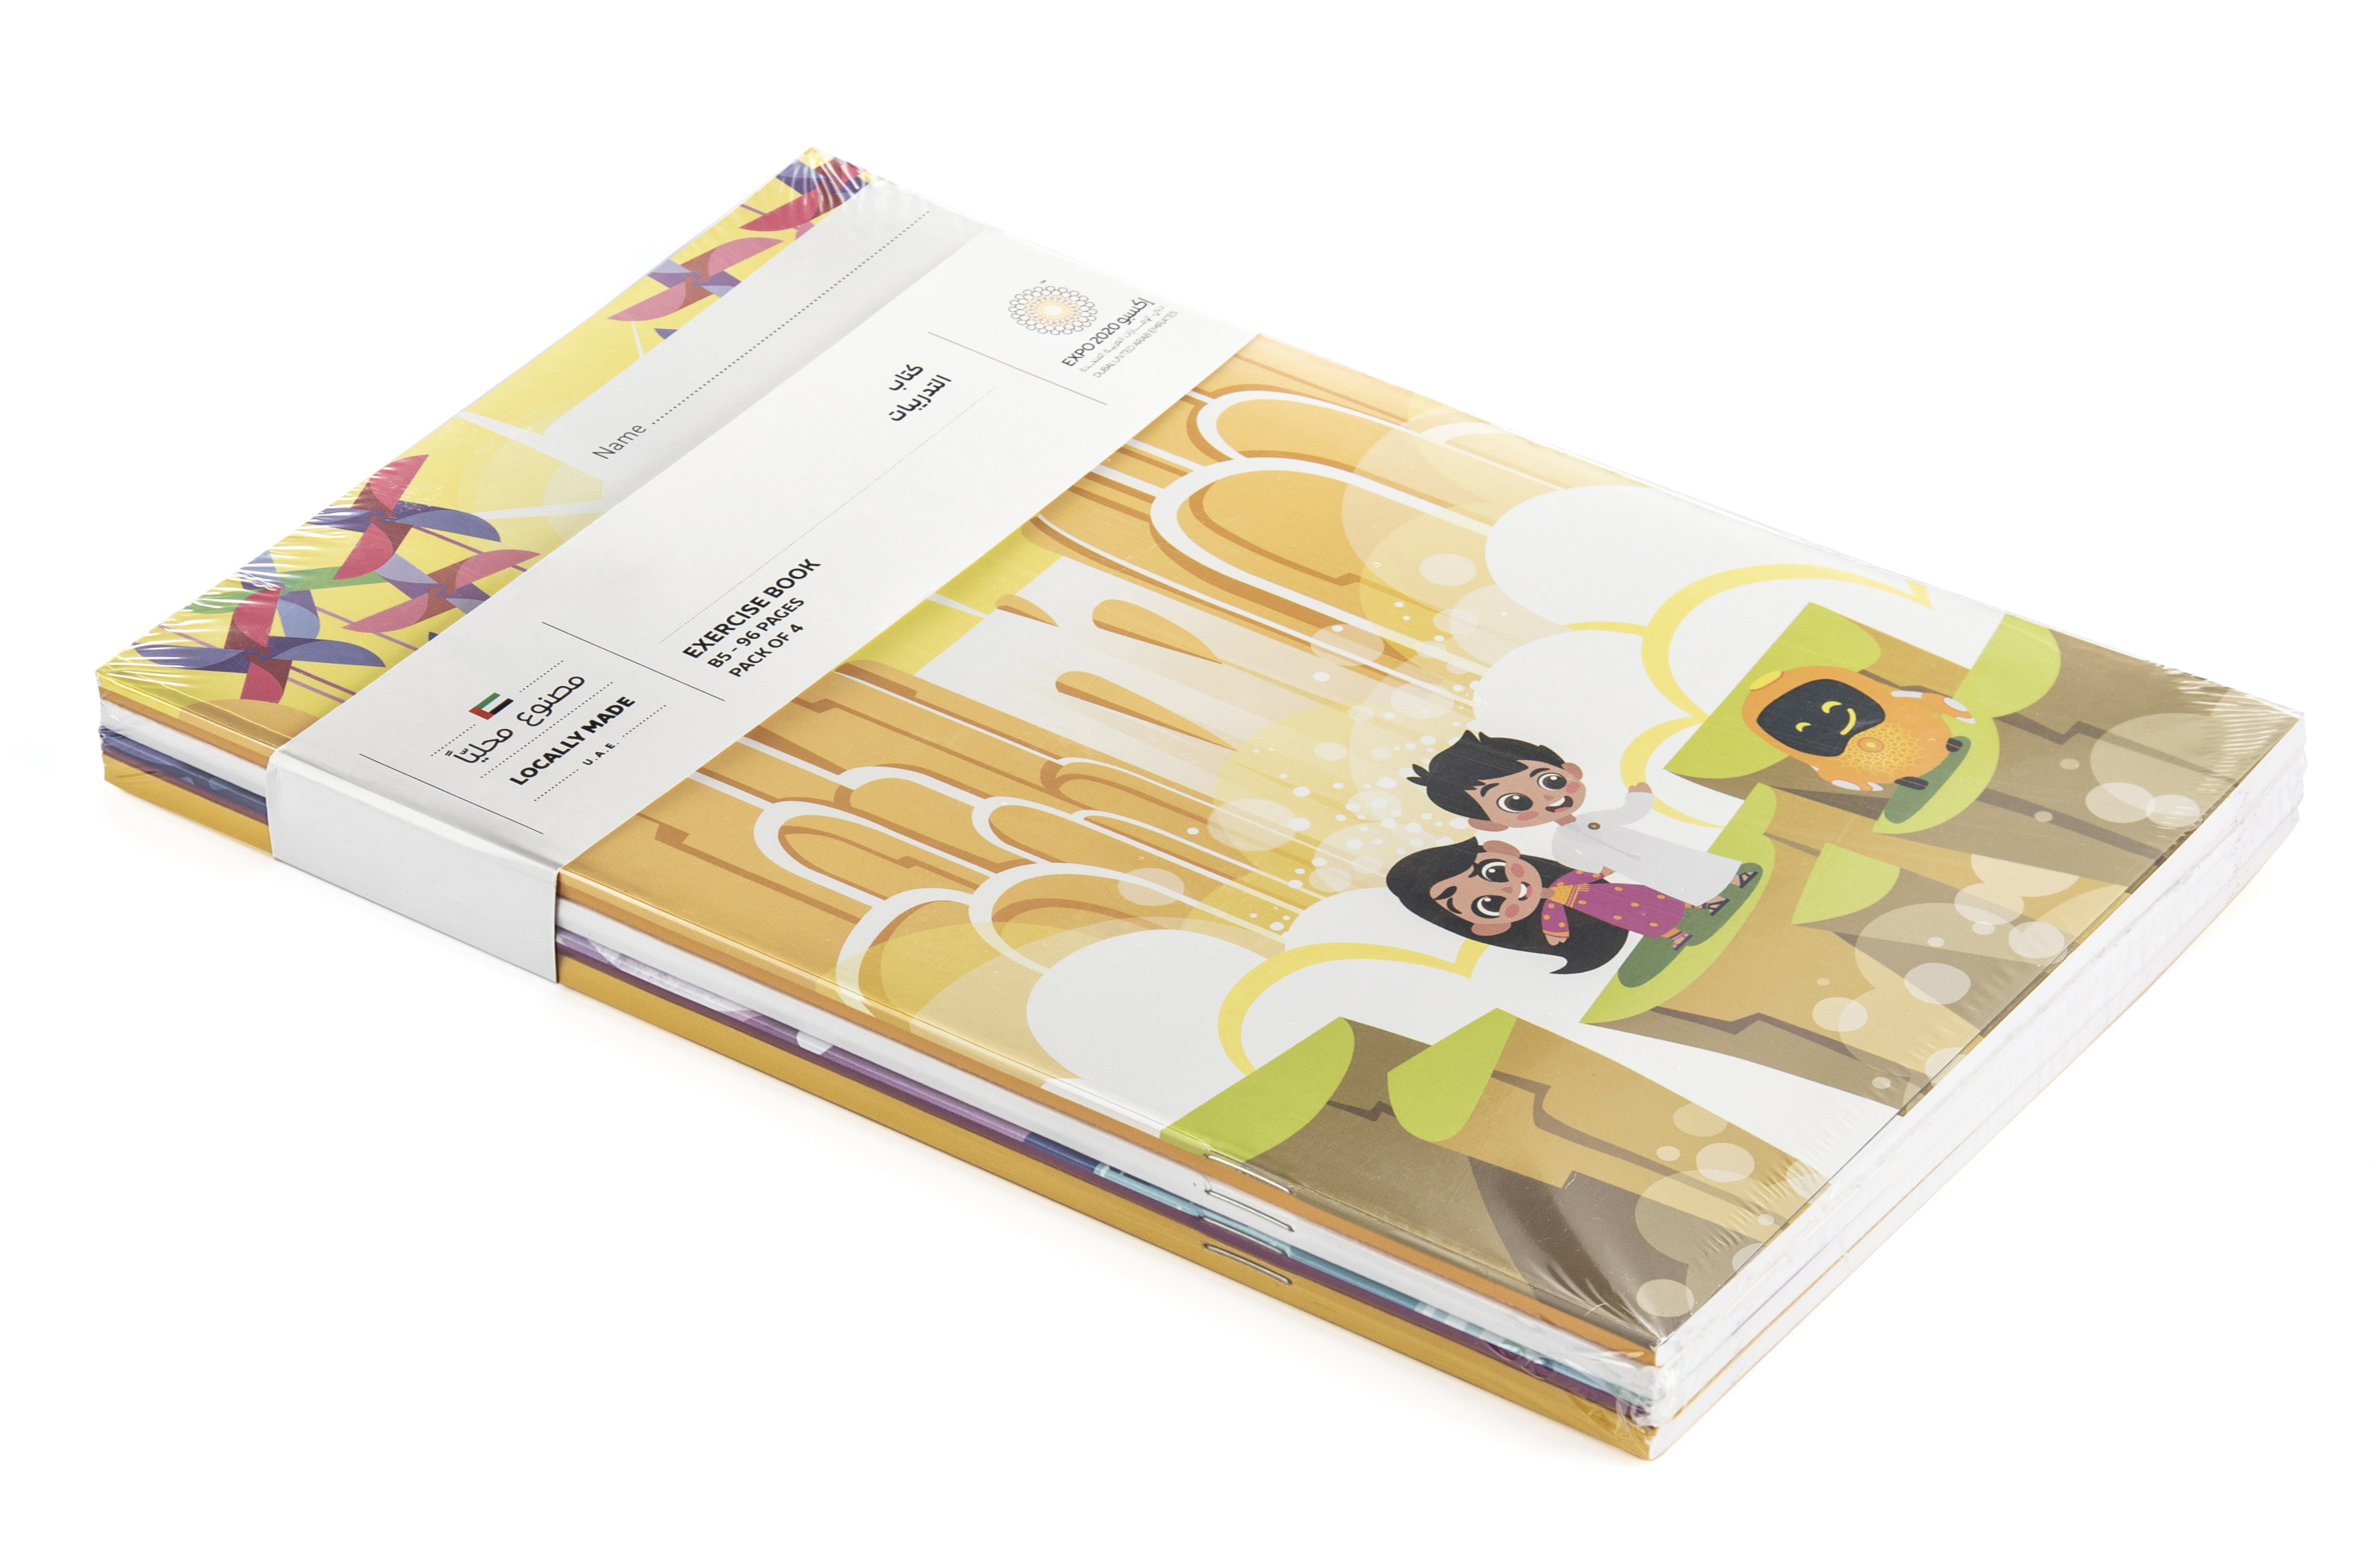 Expo 2020 Dubai Mascots B5 Exercise Books Pack of 4 - 96 Pages